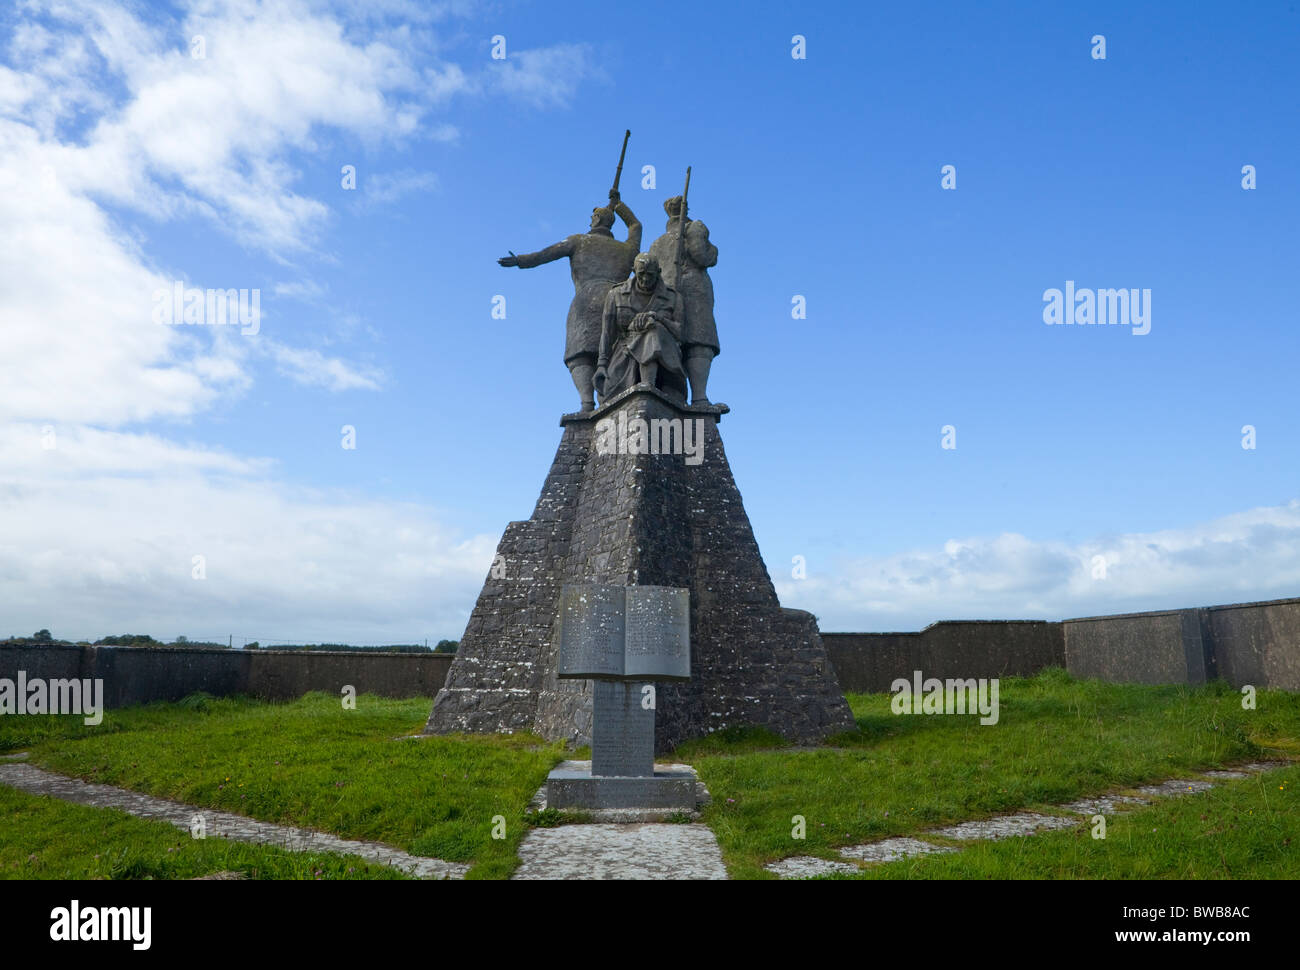 The War of Independence Commemorative Miltary Memorial at Shankhill Cross, Elphin, County Roscommon, Ireland - Stock Image